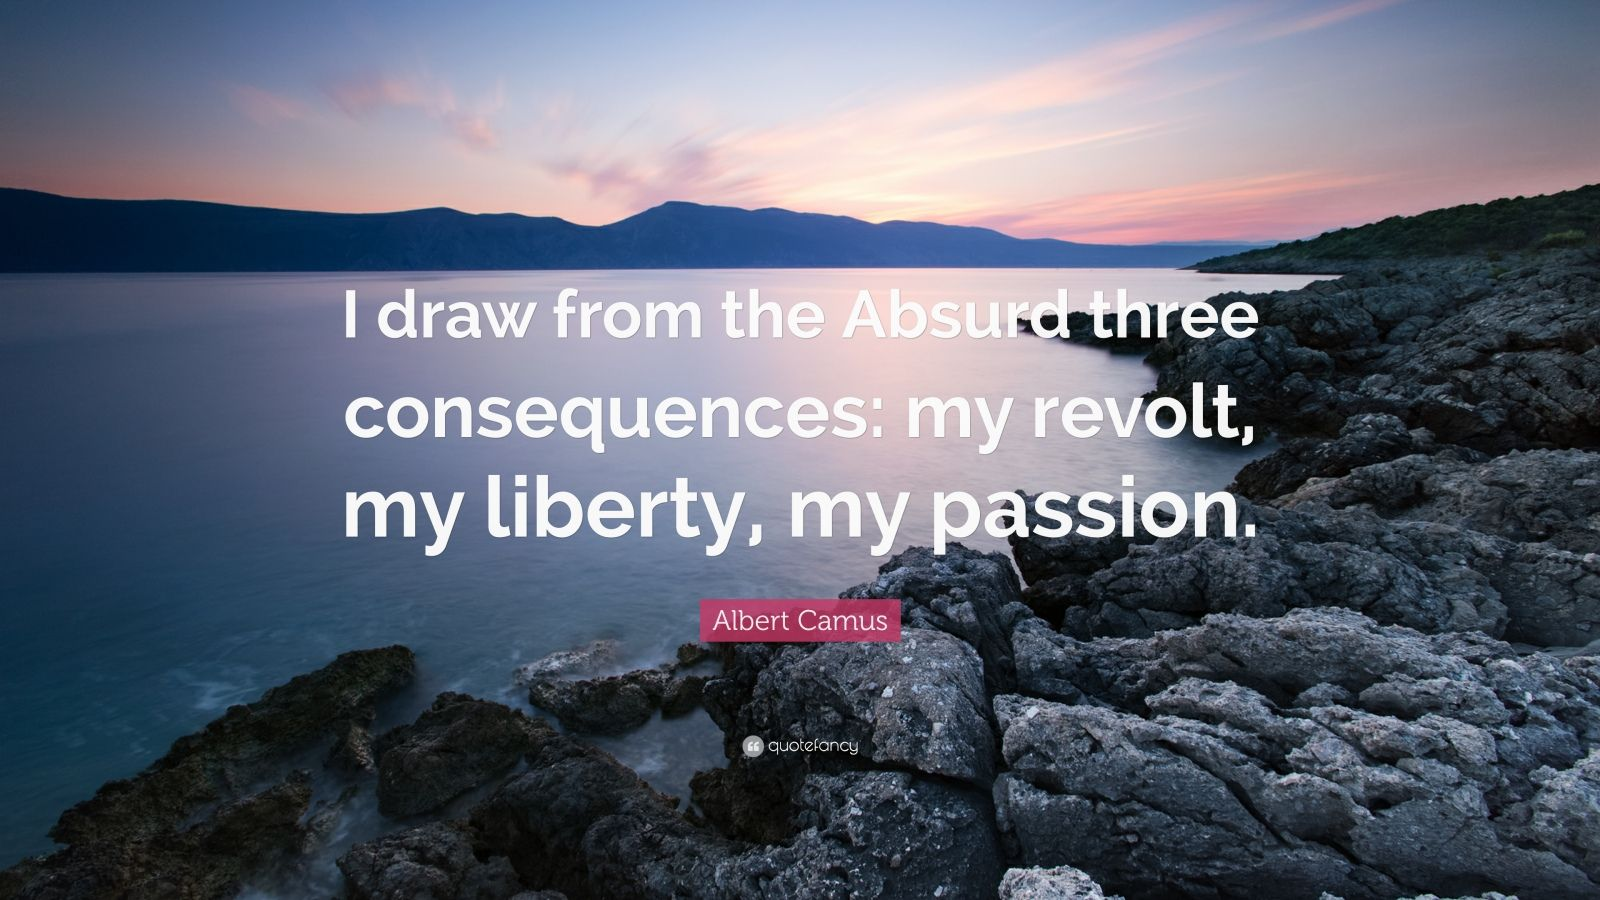 """Albert Camus Quote: """"I draw from the Absurd three consequences: my revolt, my liberty, my passion."""""""